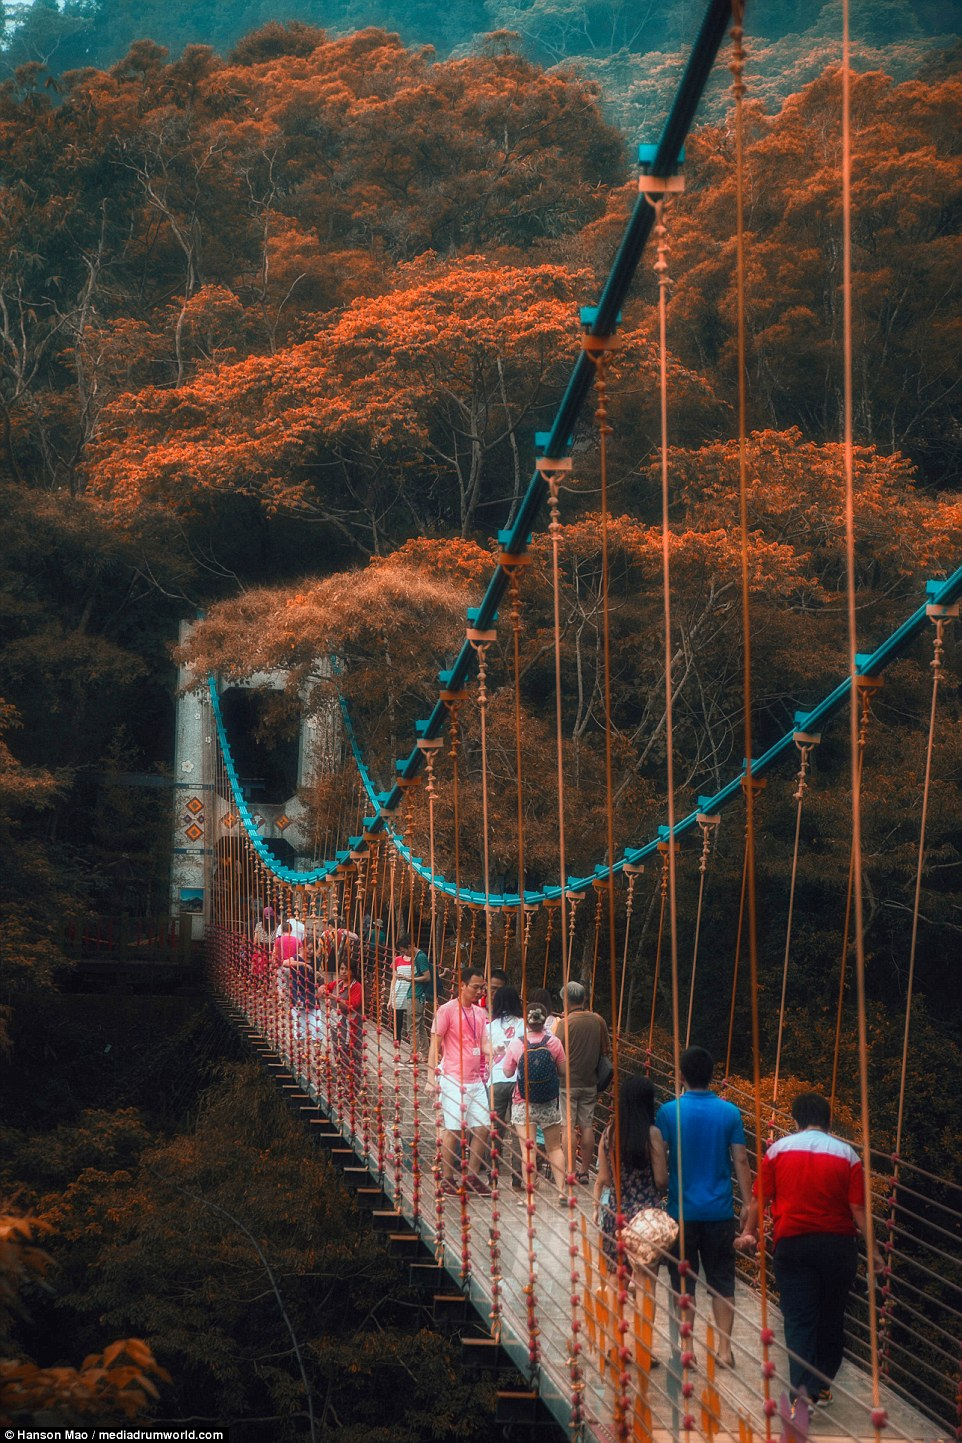 A new glass-bottomed bridge has become an instant hit with thrill-seeking tourists after opening in Nantou, Taiwan